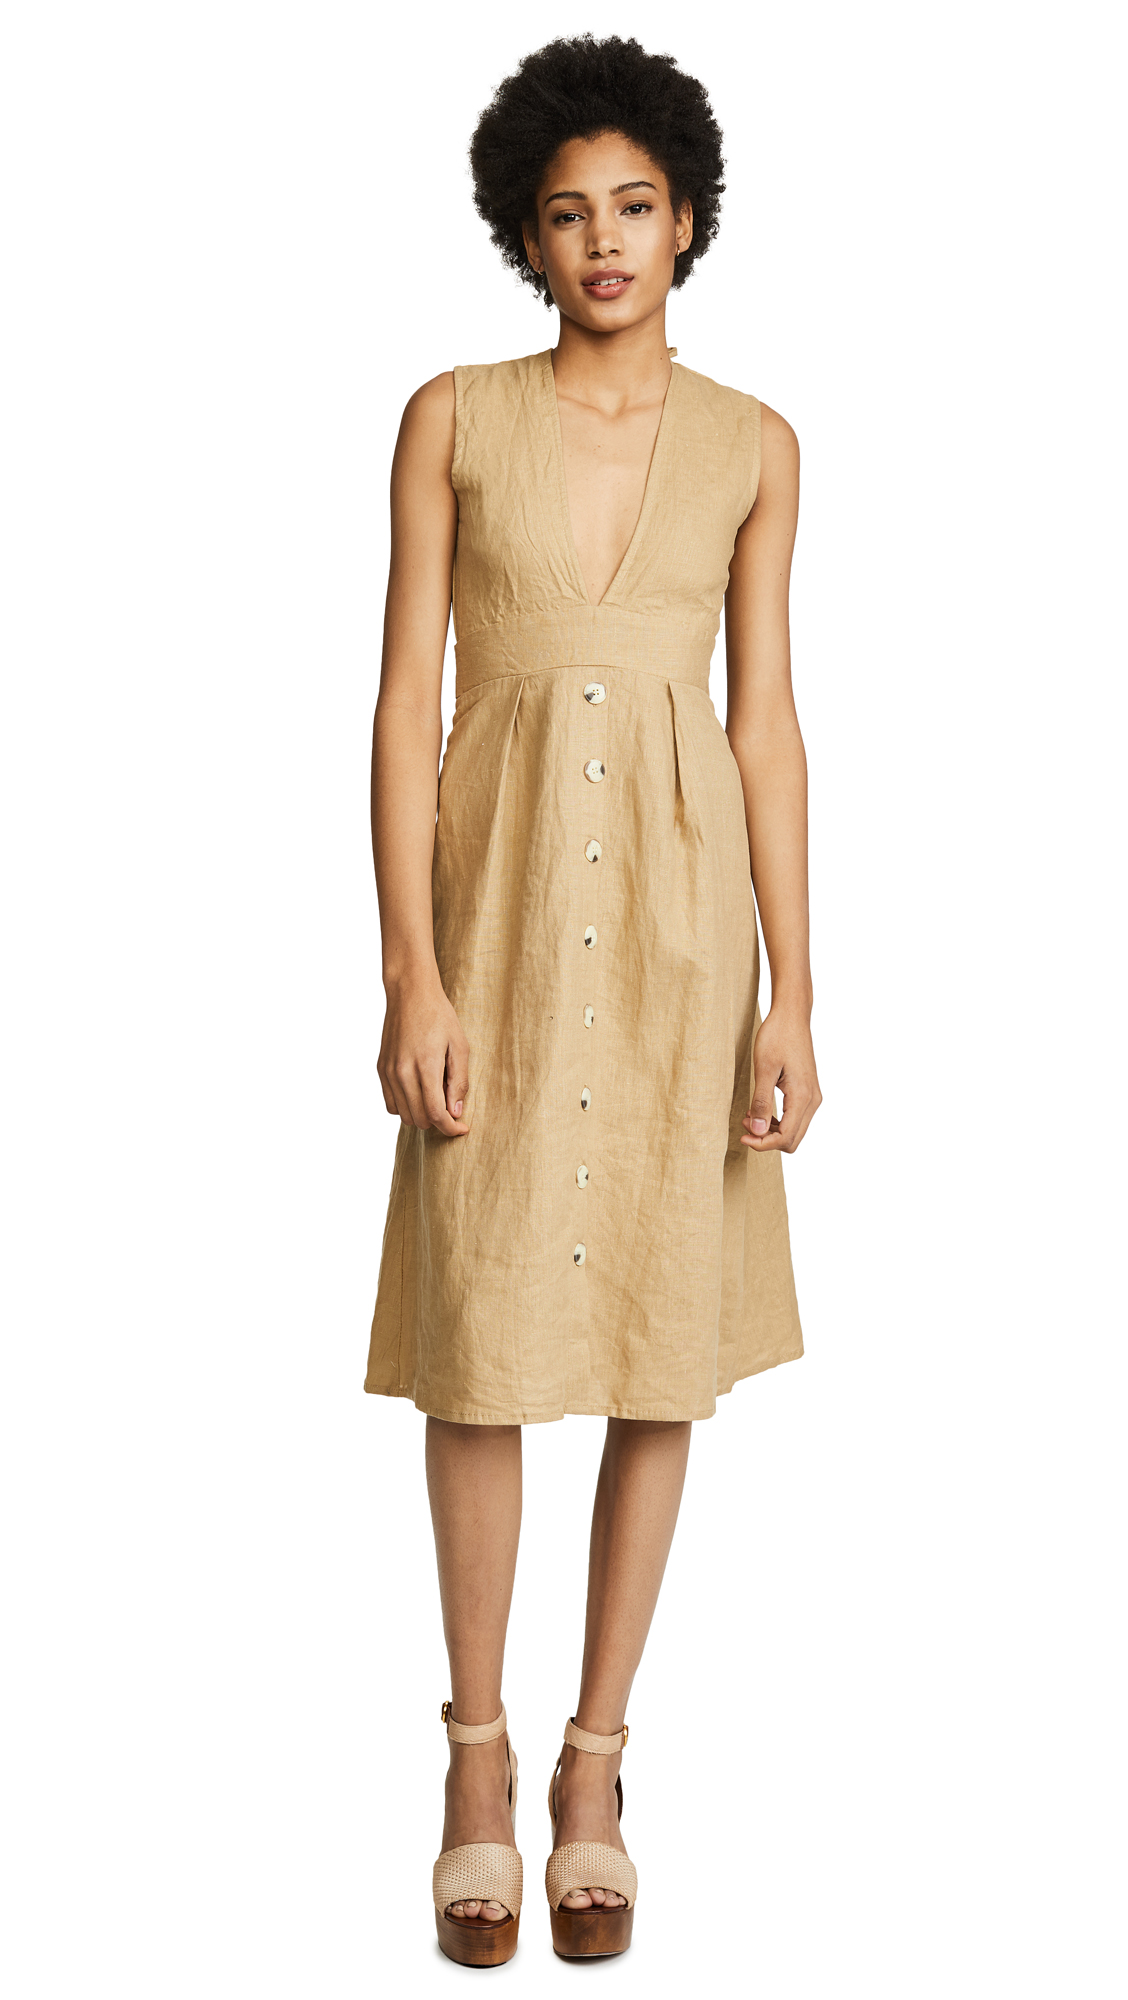 FAITHFULL THE BRAND Le Roch Midi Dress - Plain Oat